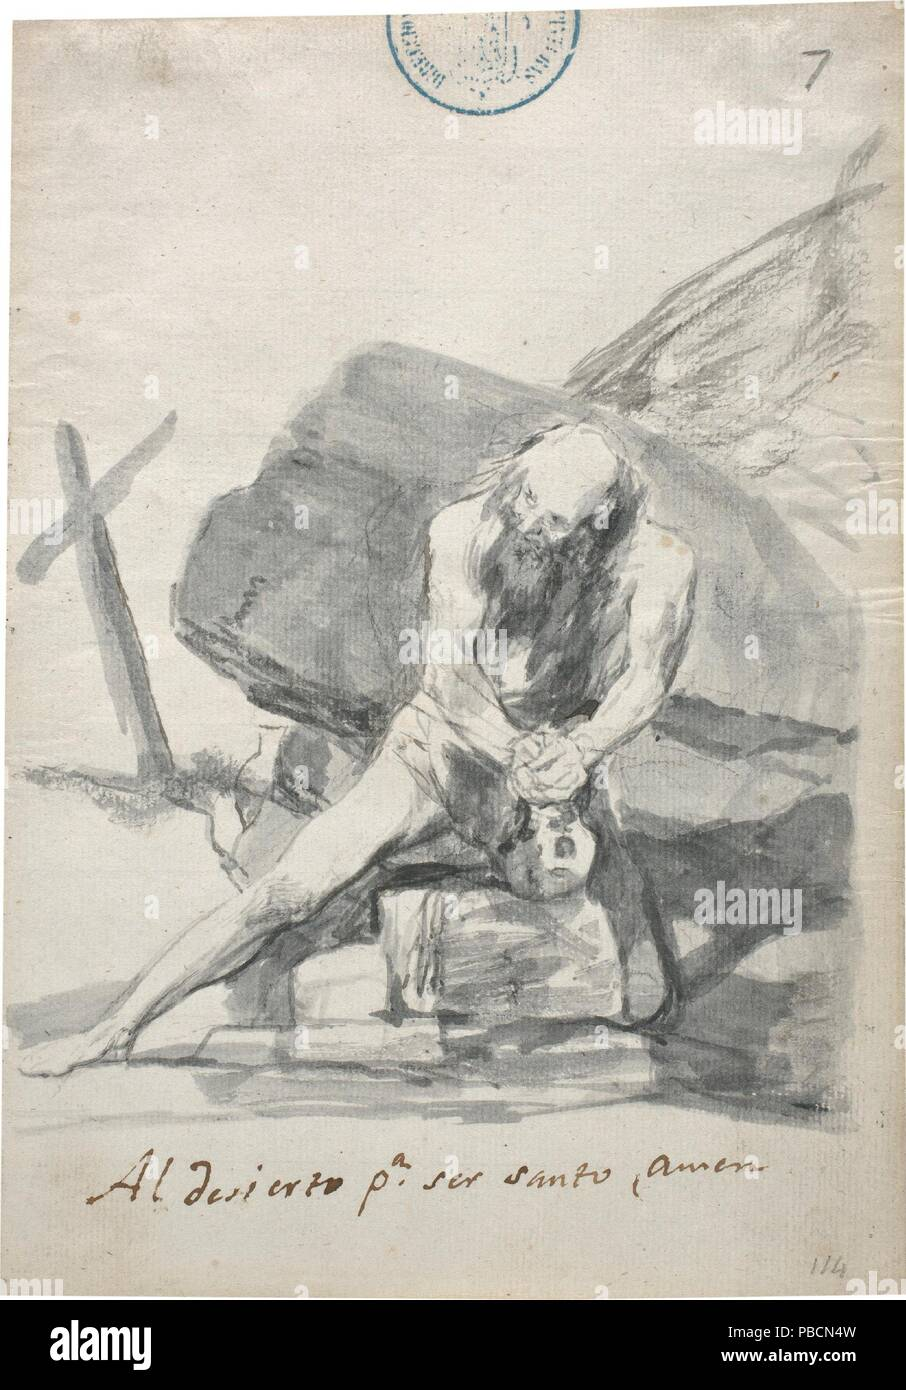 Francisco de Goya y Lucientes / 'To the desert to be a saint